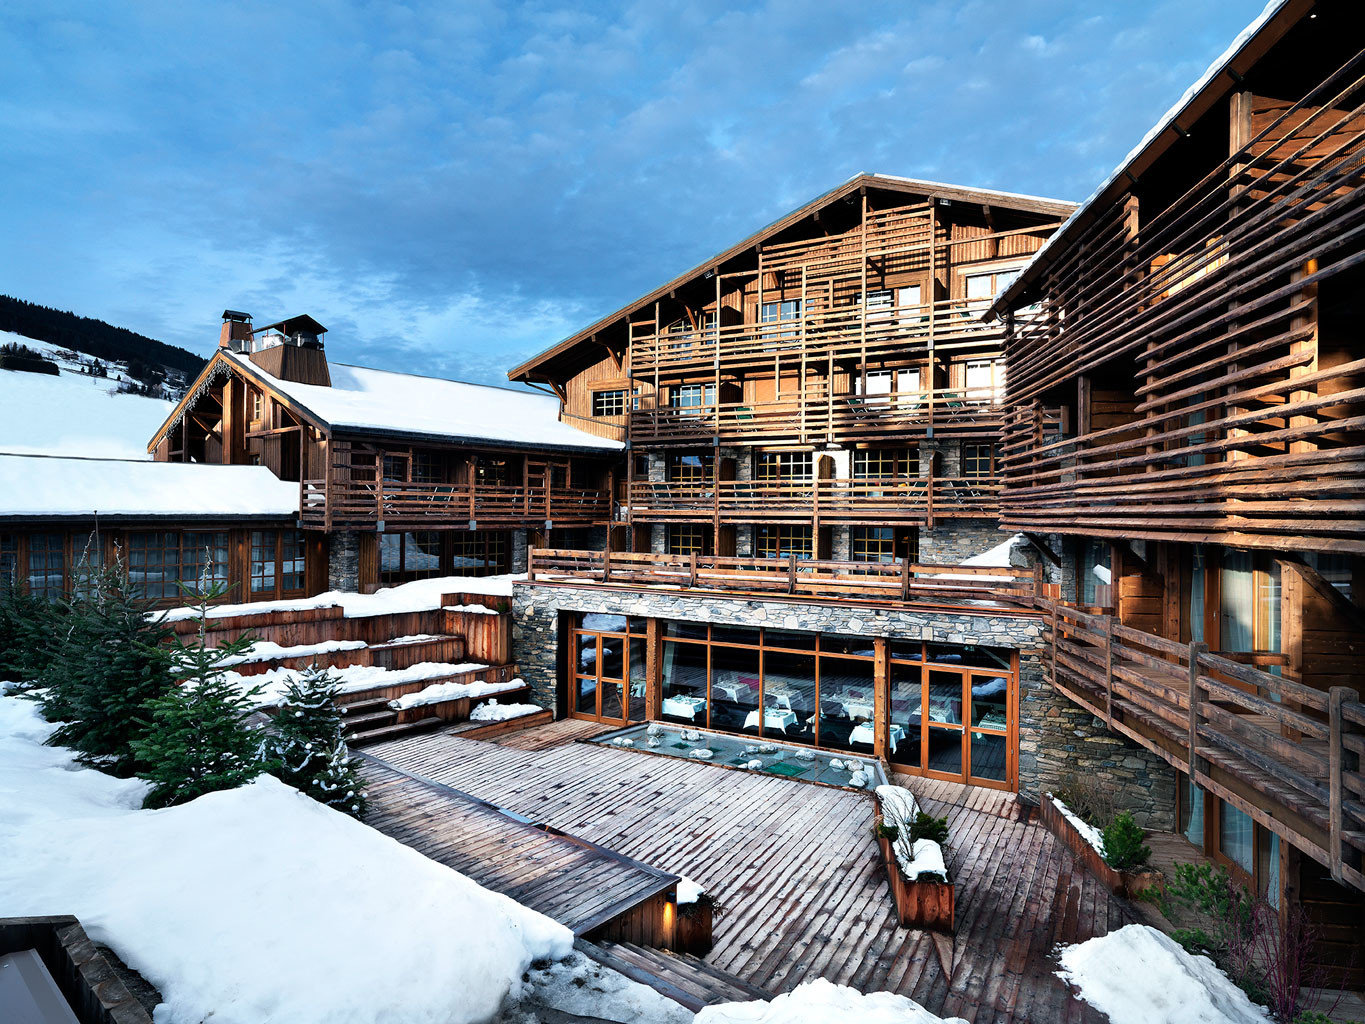 Buildings Country Exterior Hip Lodge Rustic building sky snow house Architecture Resort residential area home roof